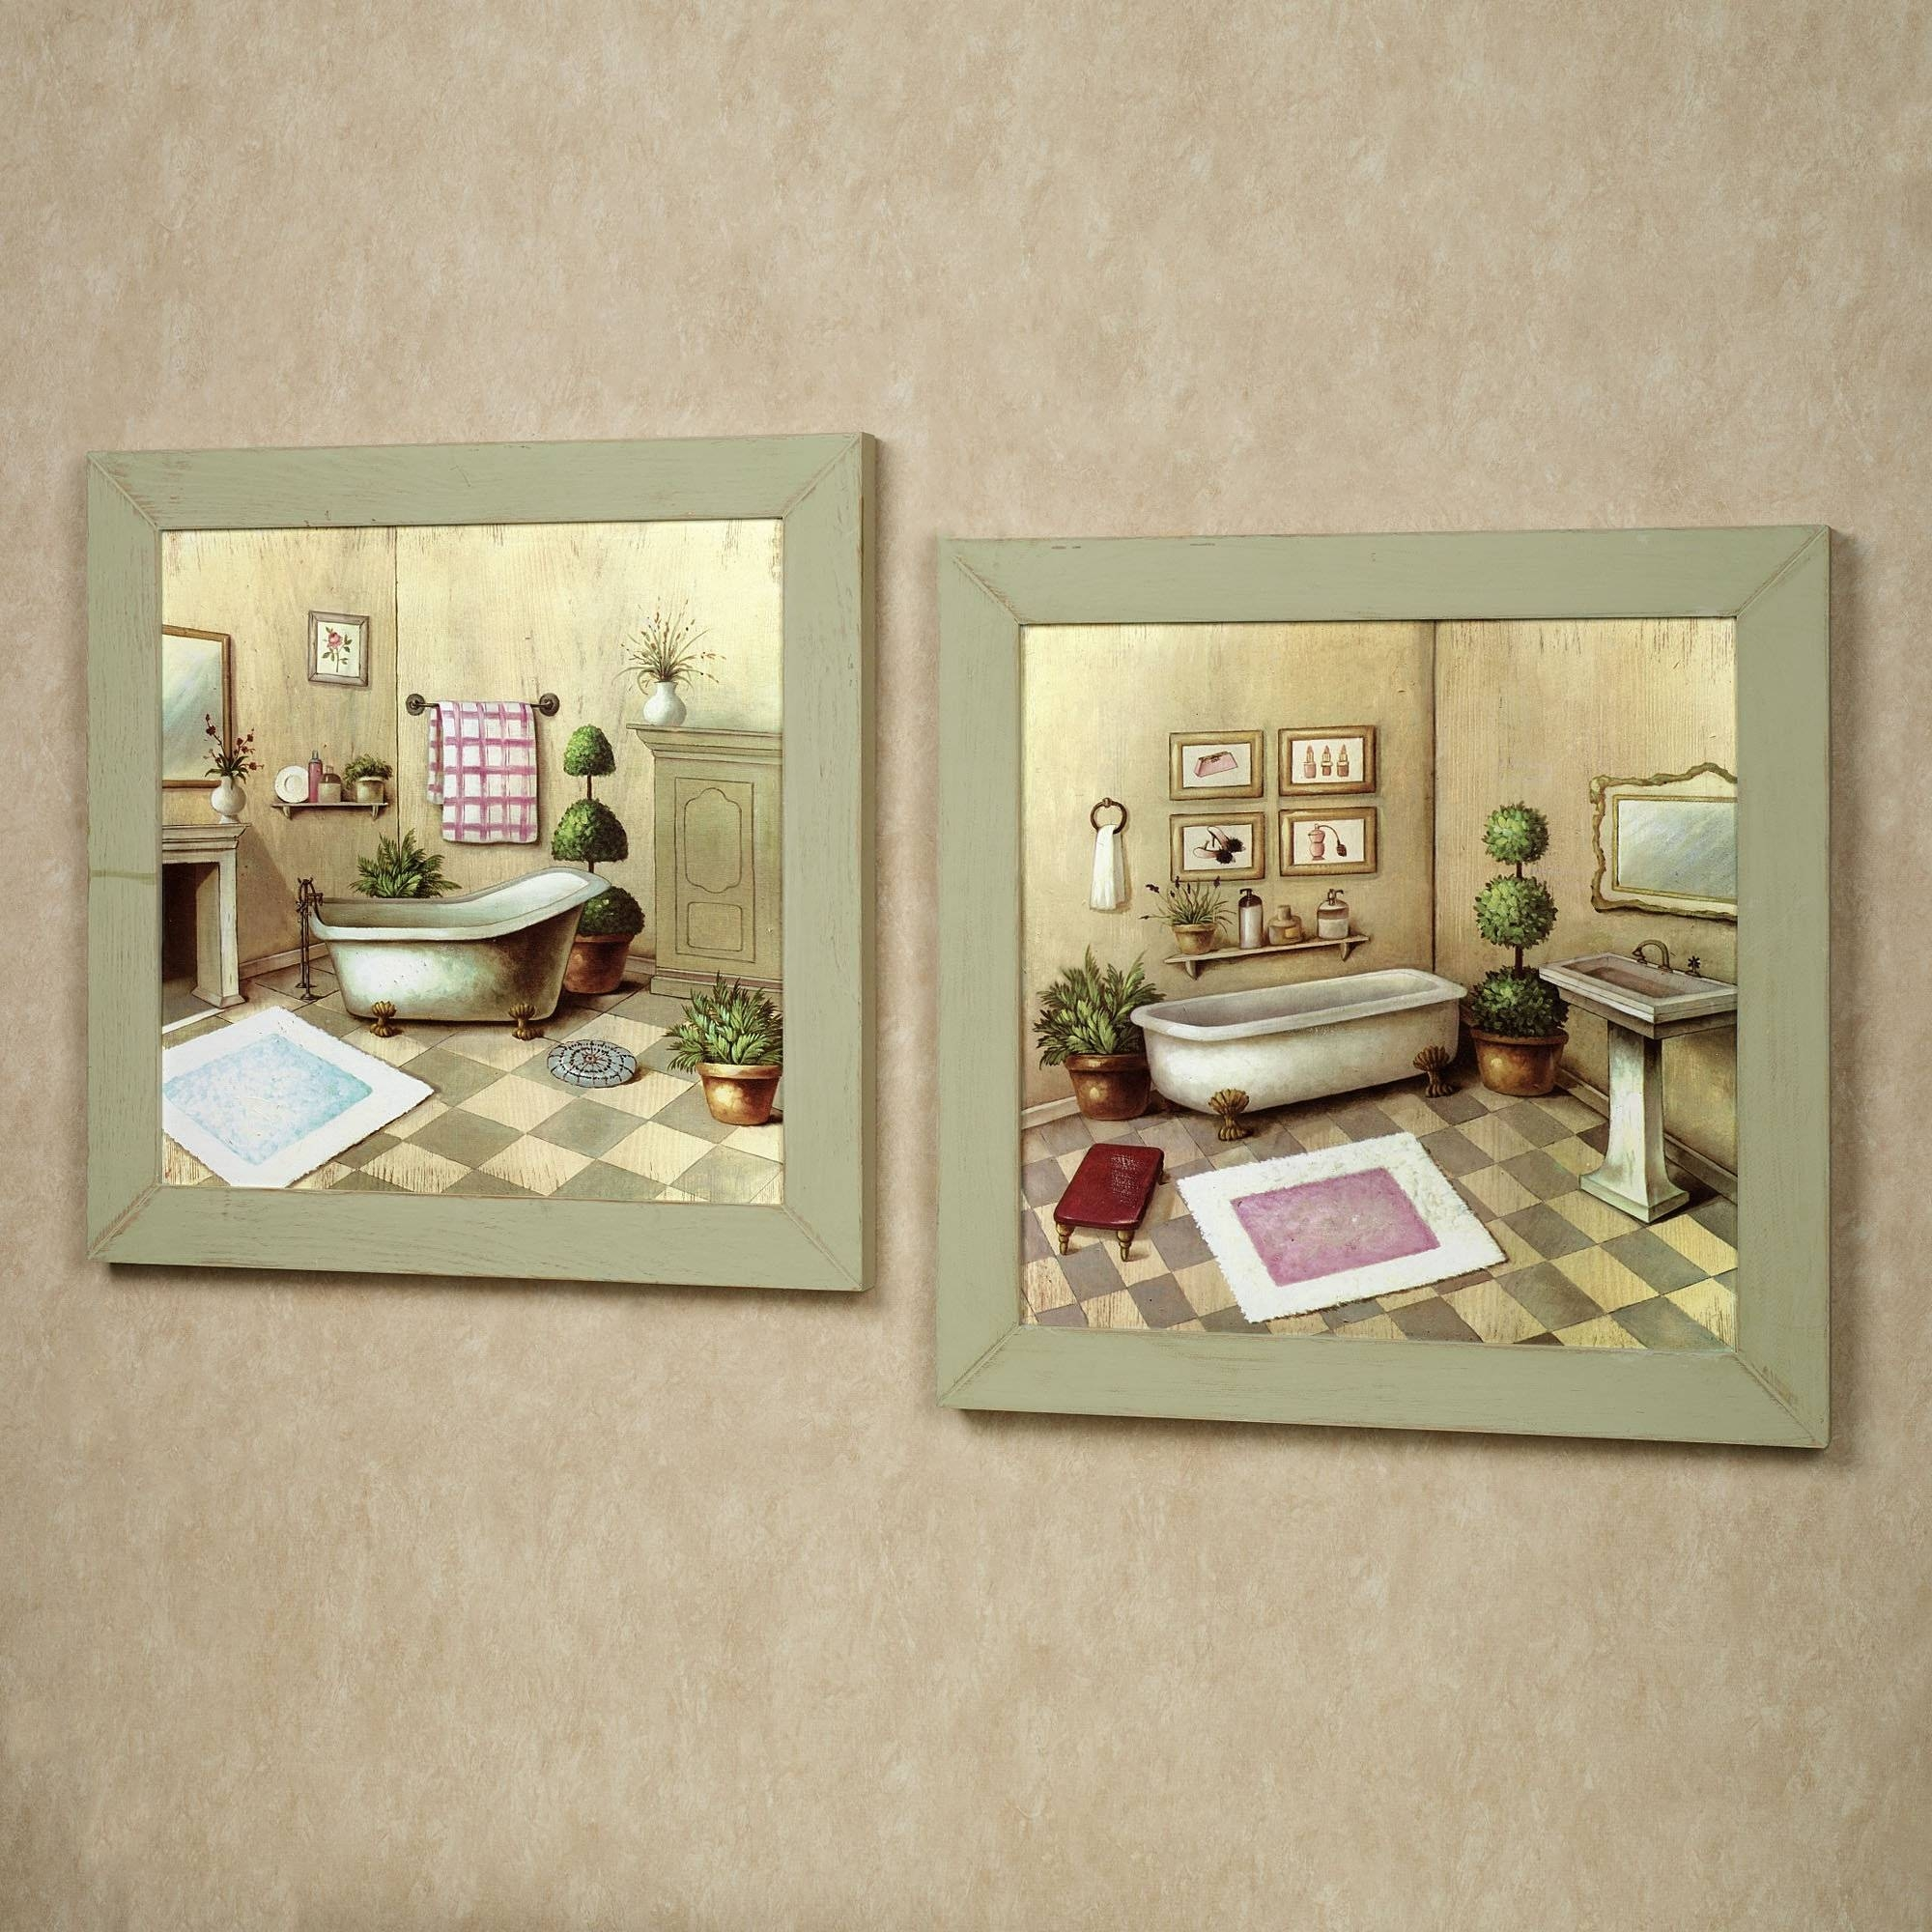 Country Style Bathroom Wall Decor • Bathroom Decor Intended For Recent Country Style Wall Art (View 25 of 30)